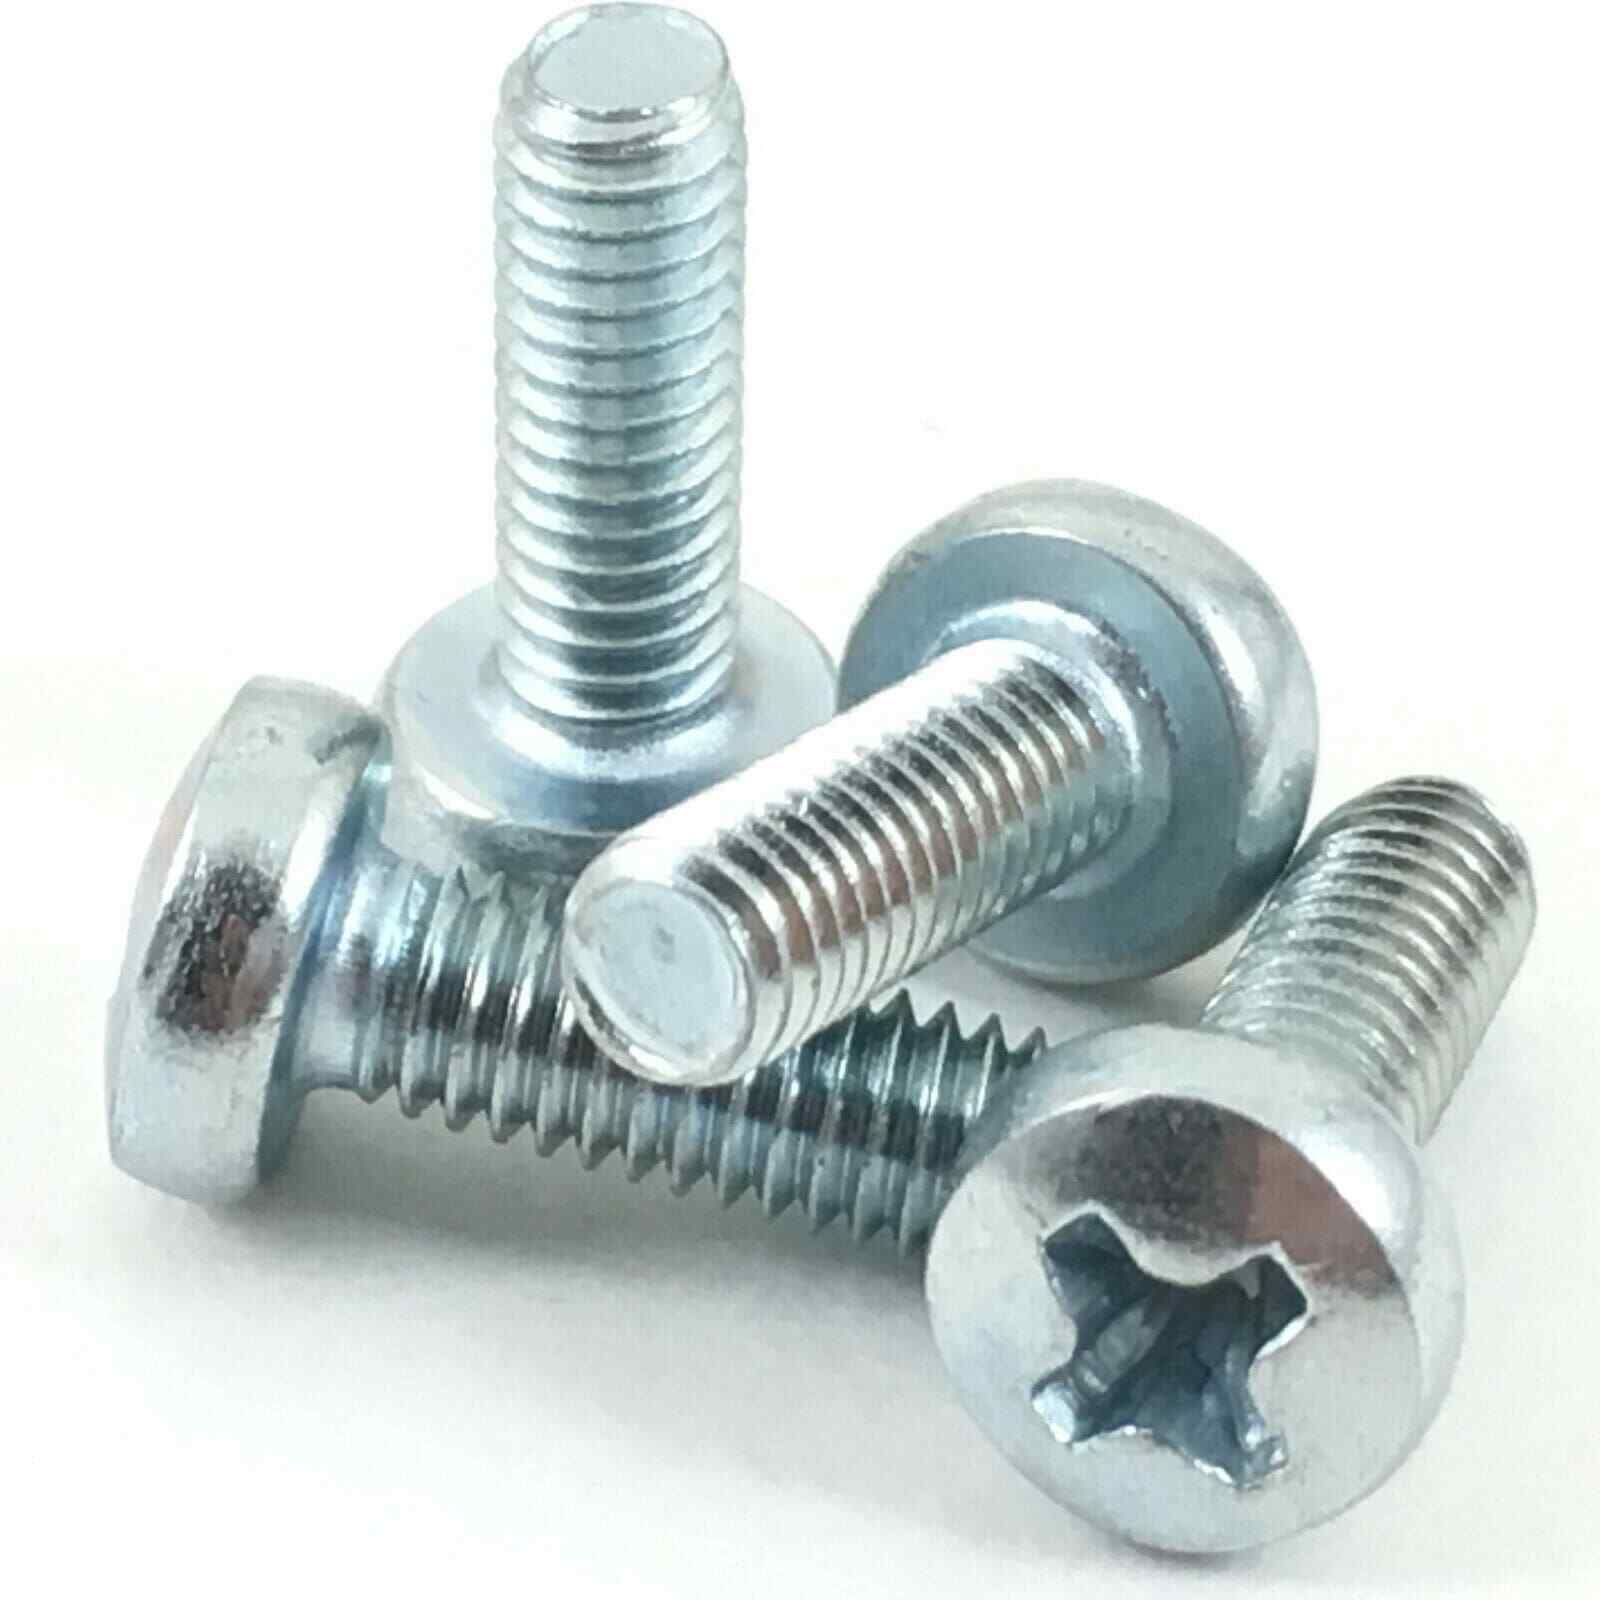 LG 42LV4400 LCD TV Base STAND SCREWS/<FAST SHIPPING/> SC001